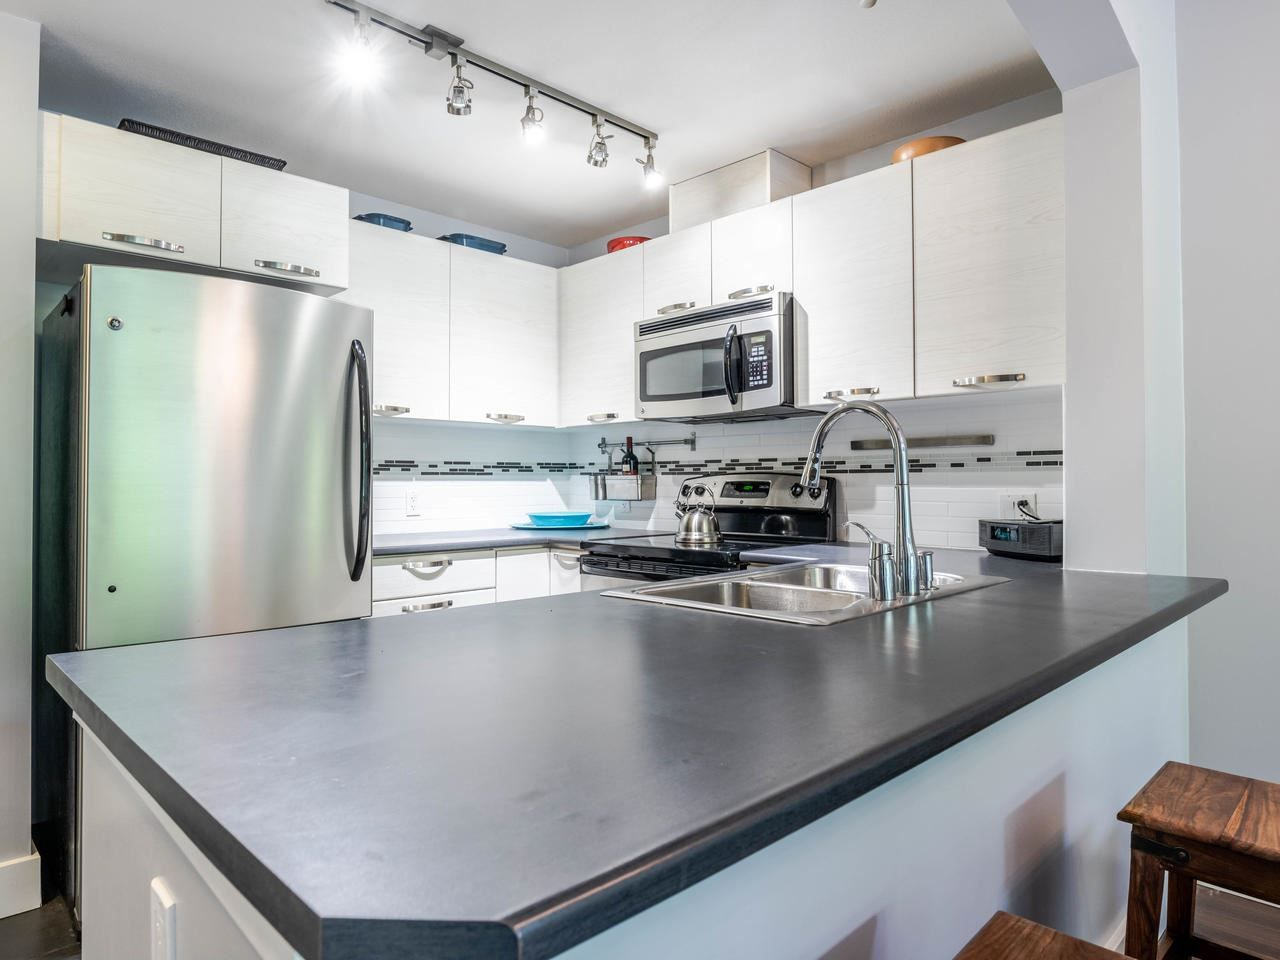 """Main Photo: 404 7418 BYRNEPARK Walk in Burnaby: South Slope Condo for sale in """"GREEN"""" (Burnaby South)  : MLS®# R2466553"""